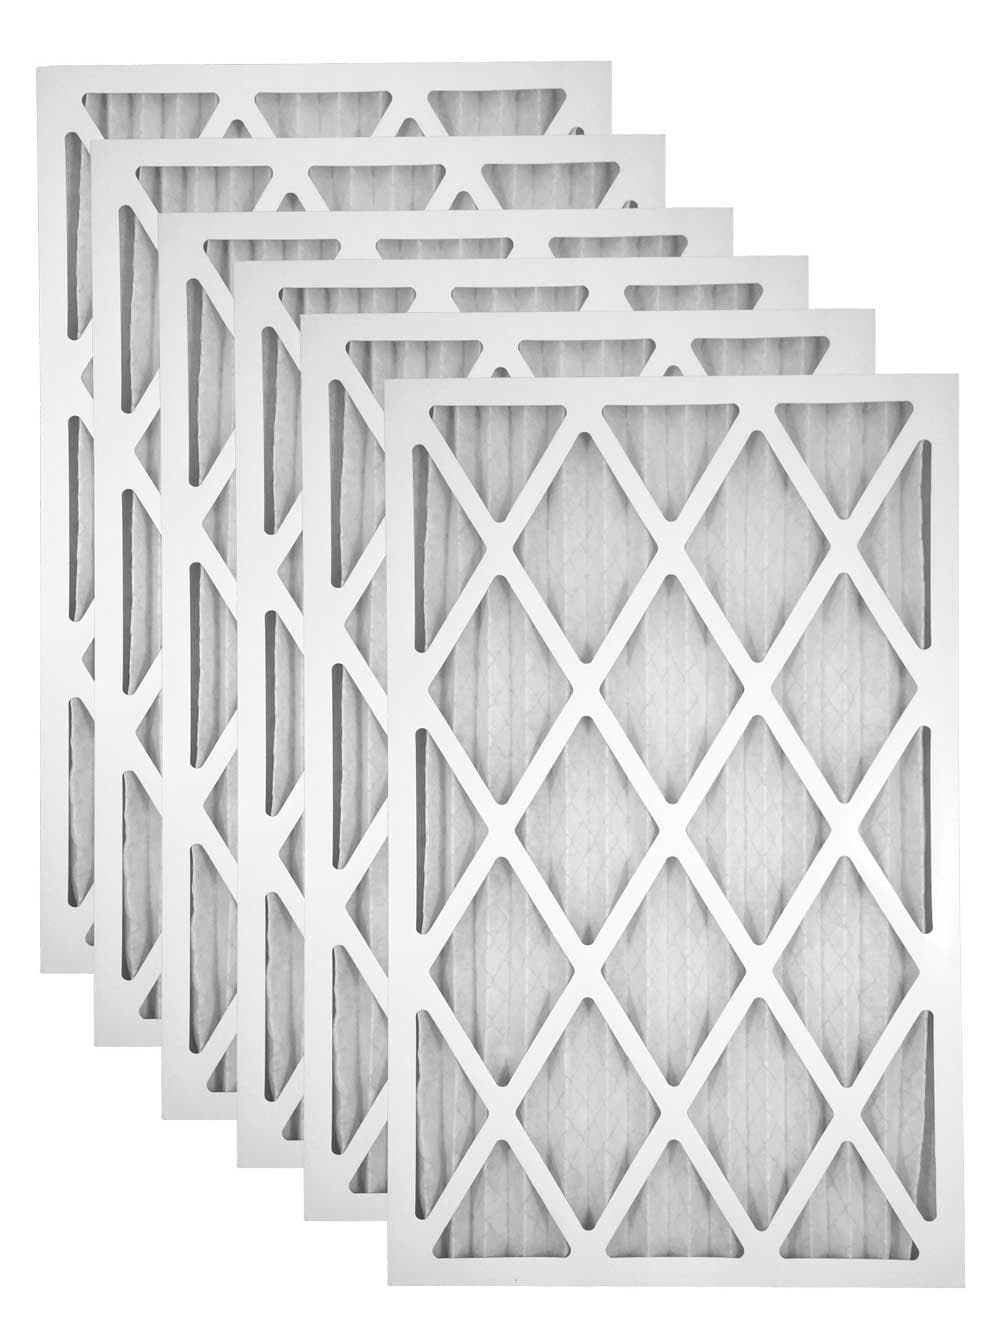 16x20x2 Merv 8 Geothermal Furnace Filter - Case of 6